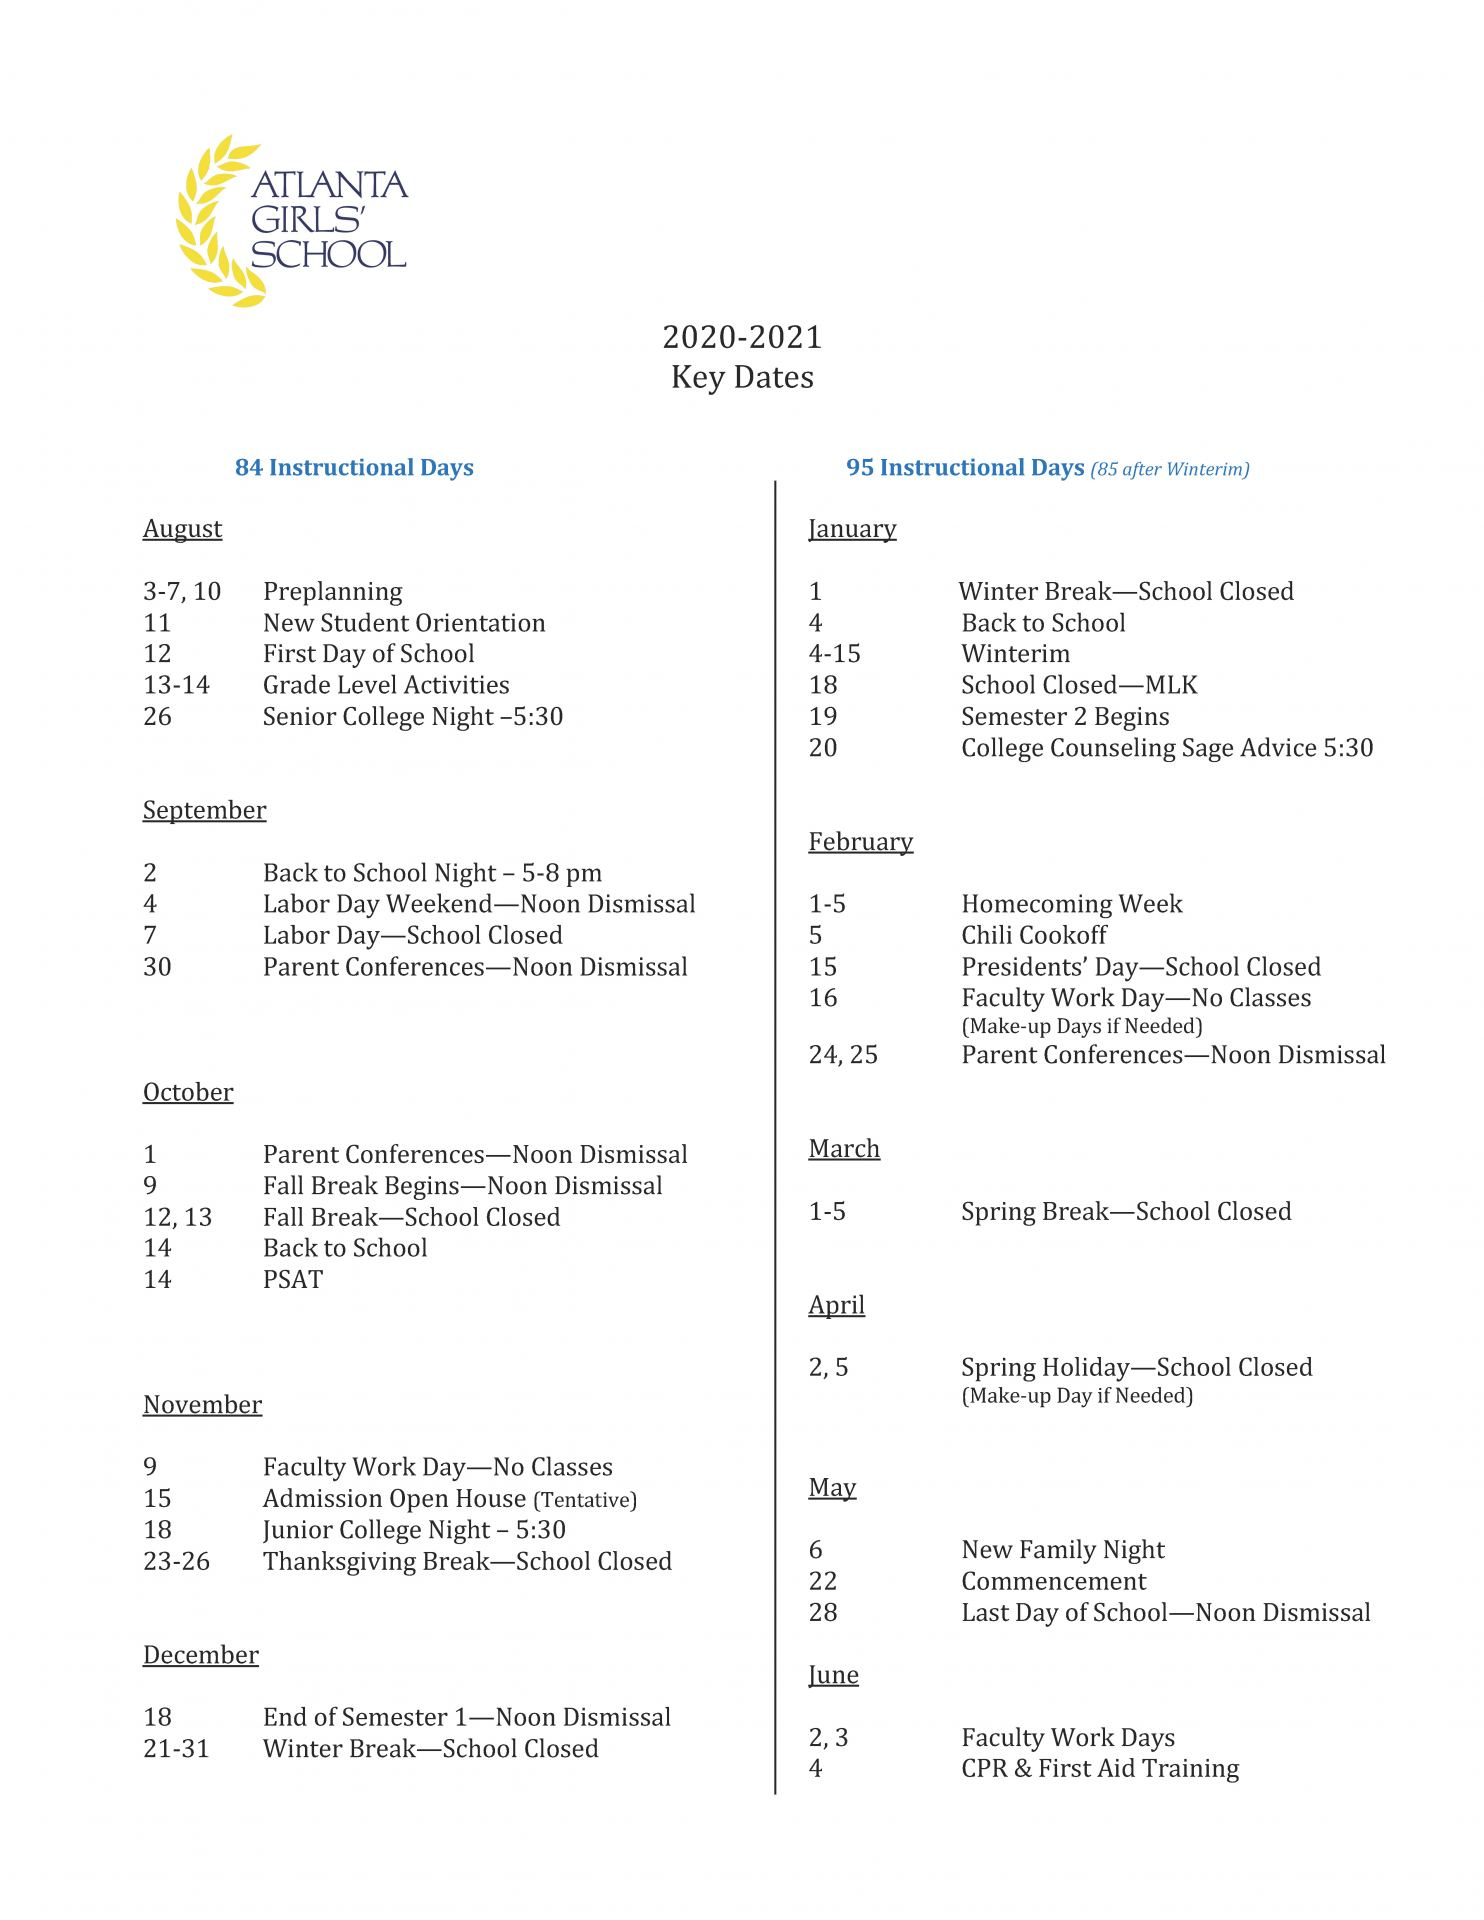 2020 2021 Calendar – Atlanta Girls' School Regarding Gsu Academic Calendar 2021